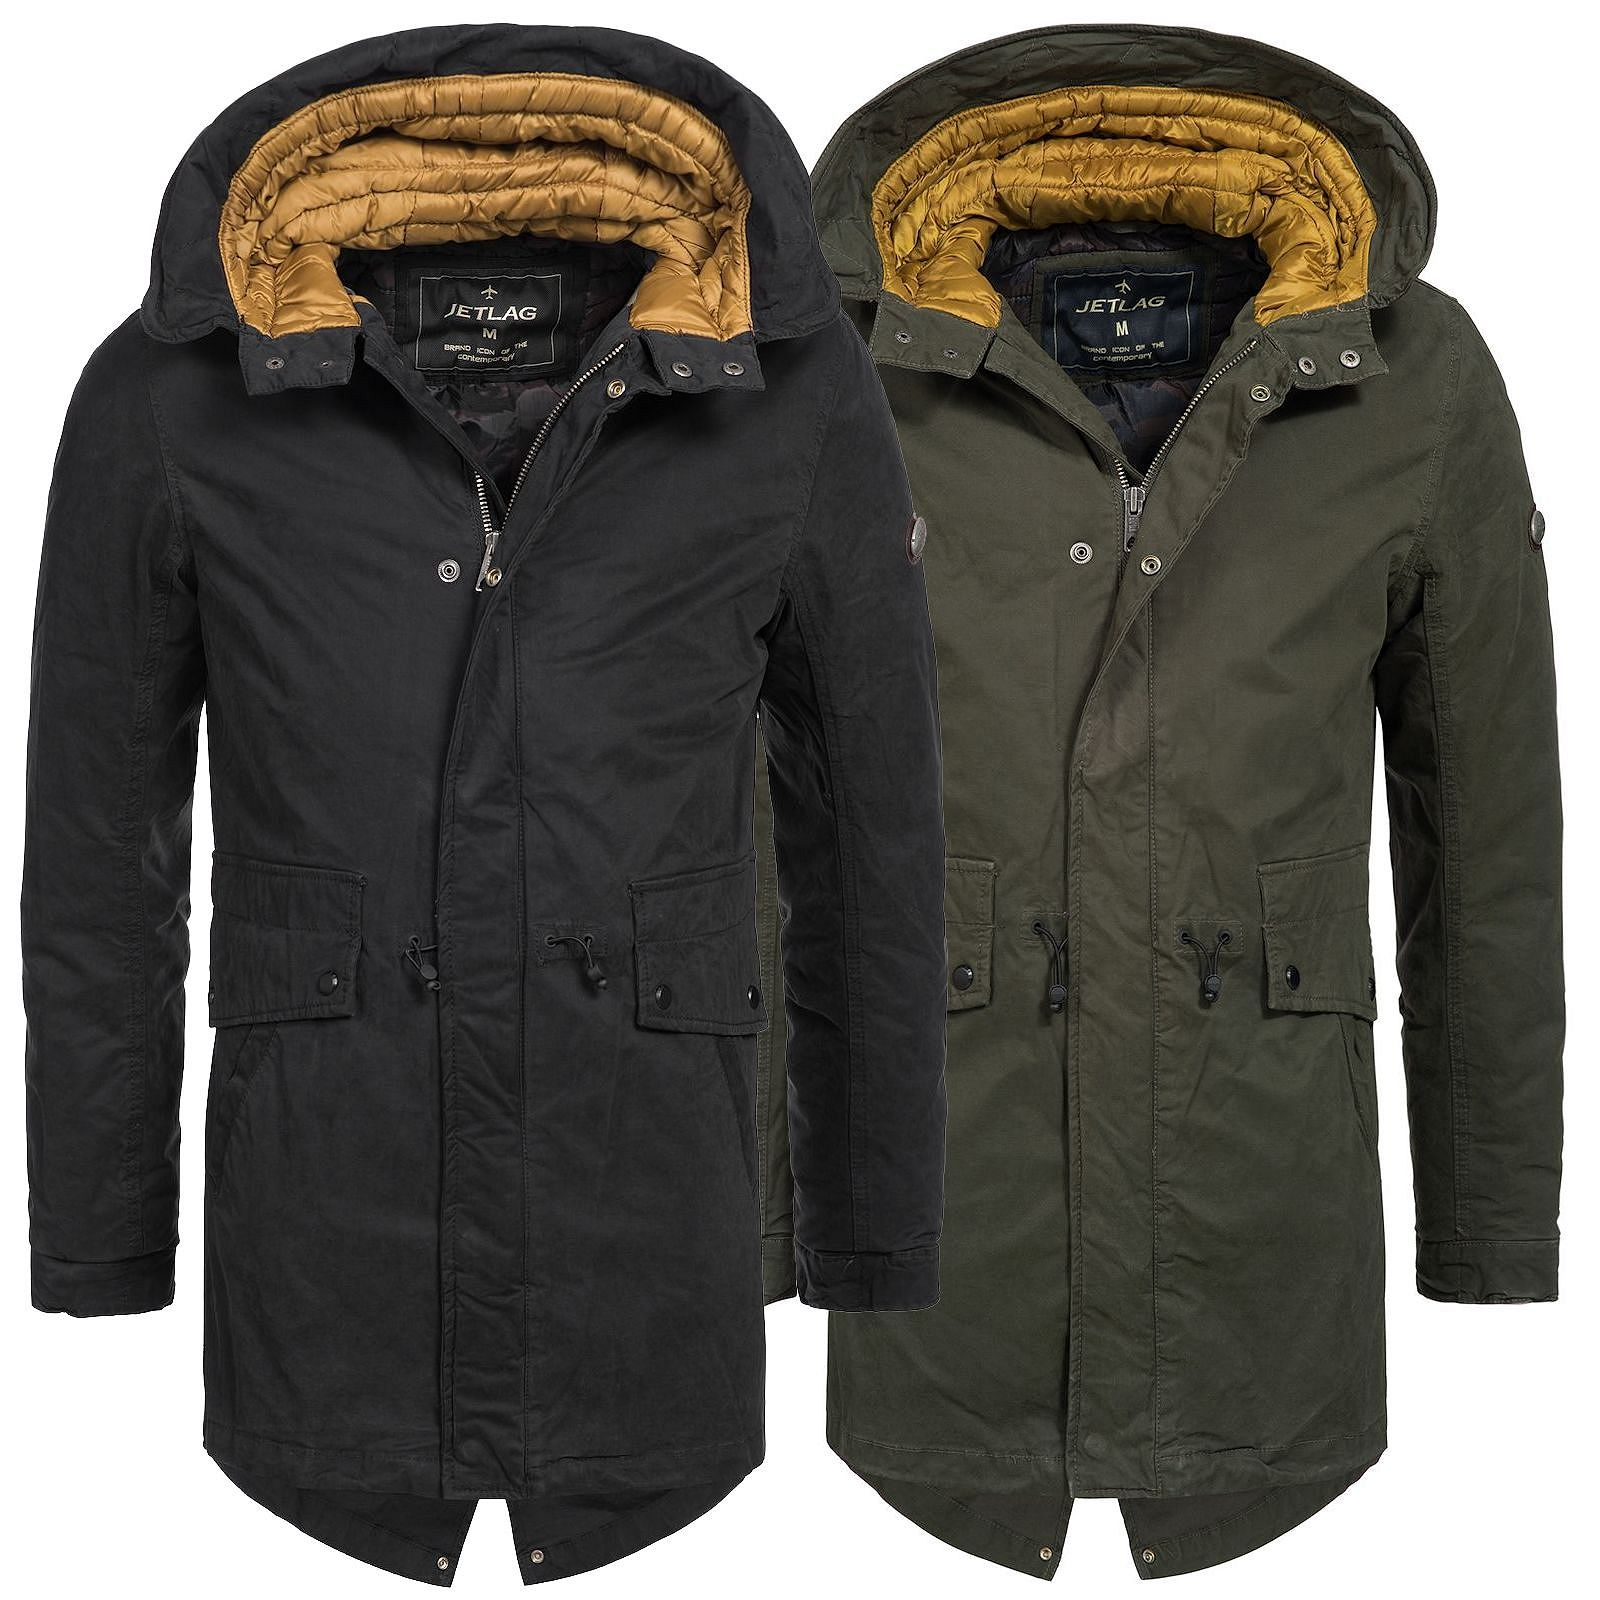 jet lag herren winterparka 17 223 jacke anorak bergangs kurzmantel parker coat ebay. Black Bedroom Furniture Sets. Home Design Ideas